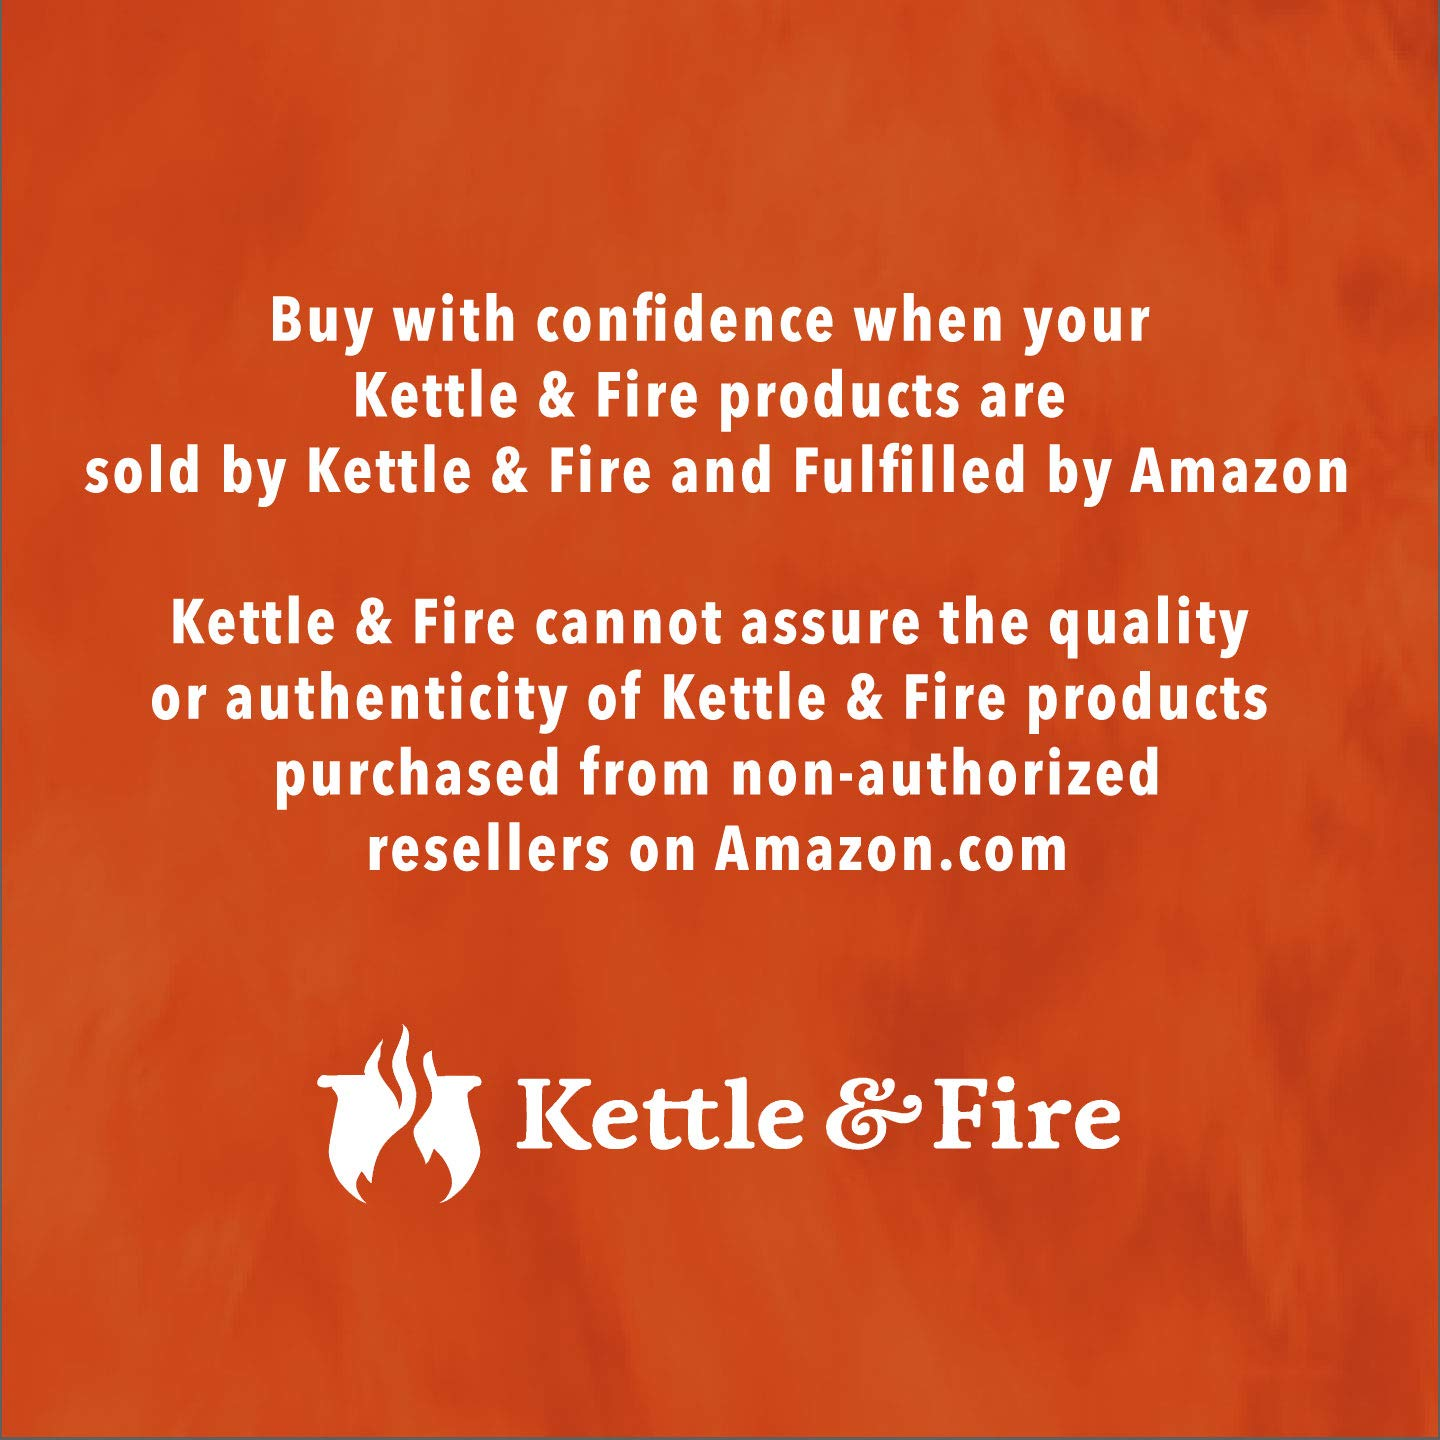 Kettle & Fire Beef Bone Broth Pack of 6 Keto Diet, Paleo Friendly, Whole 30 Approved, Gluten Free, with Collagen, 7g of protein, 16.2 fl oz